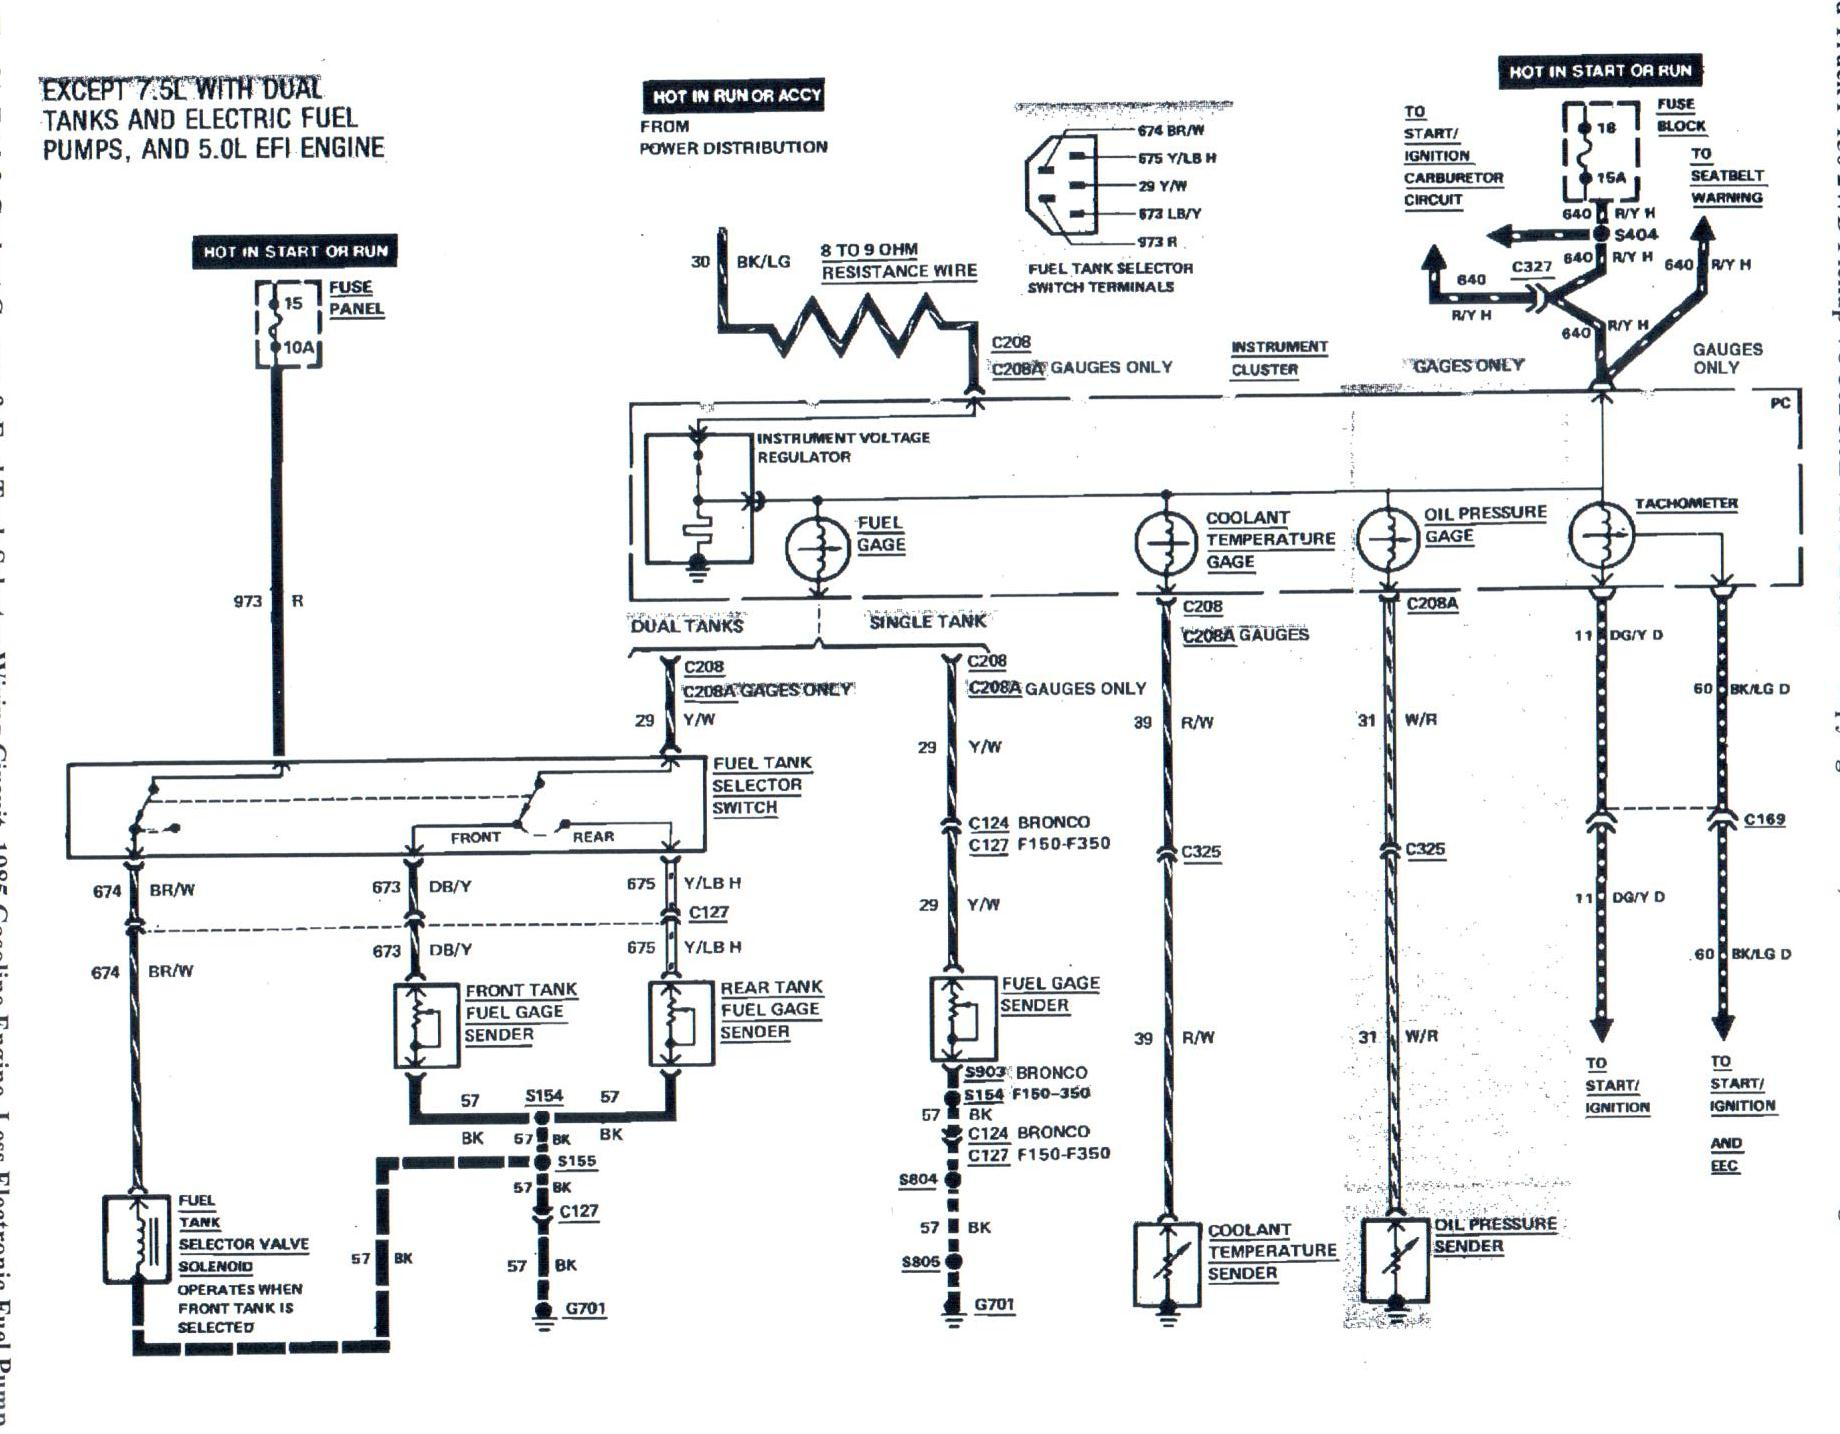 1985 f150 fuel problem please help!! fordforumsonline com 1985 ford f150 wiring diagram at creativeand.co